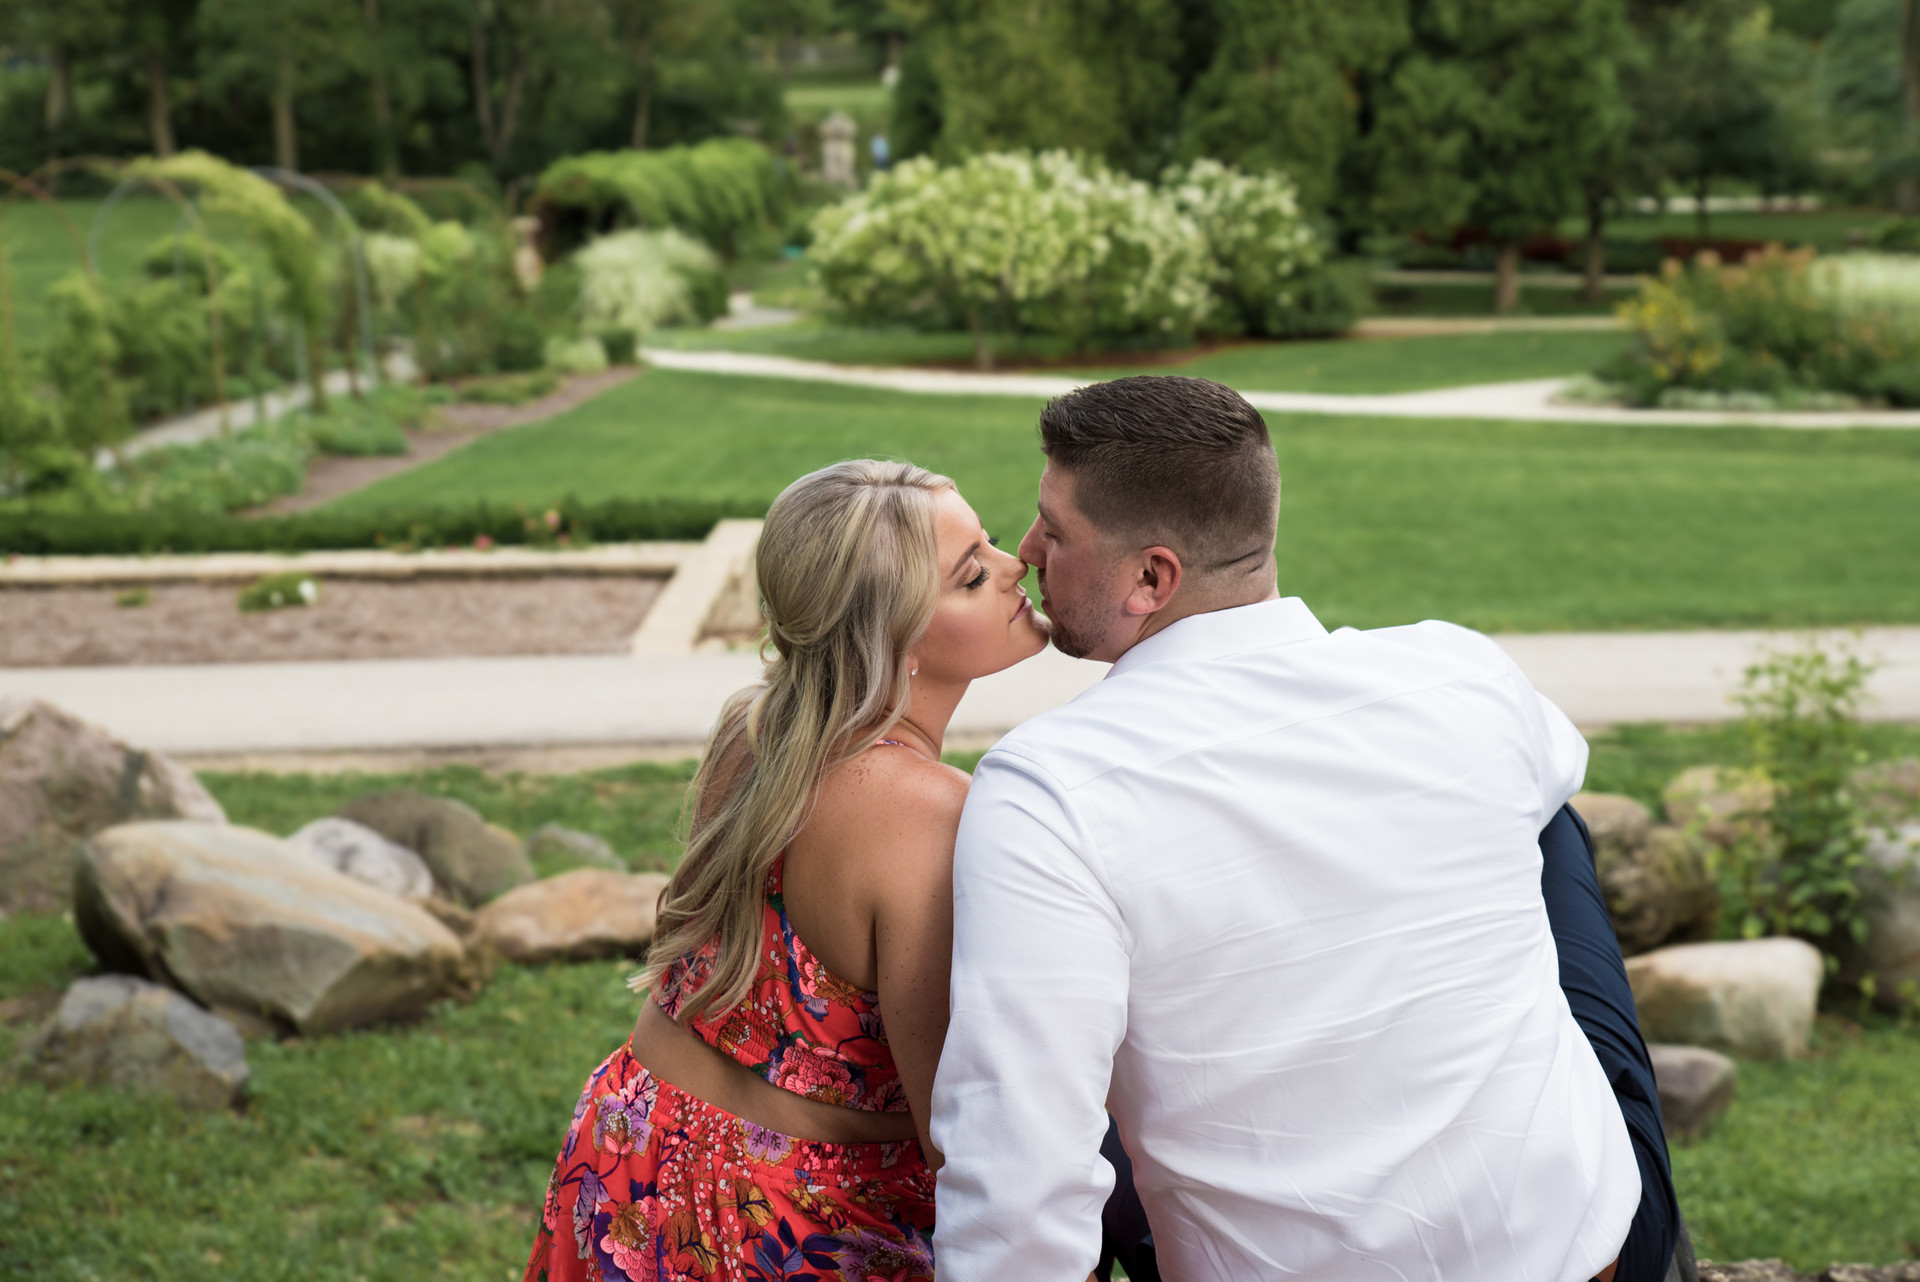 Jessica M. Photography Engagement Photographer Arlington Heights IL